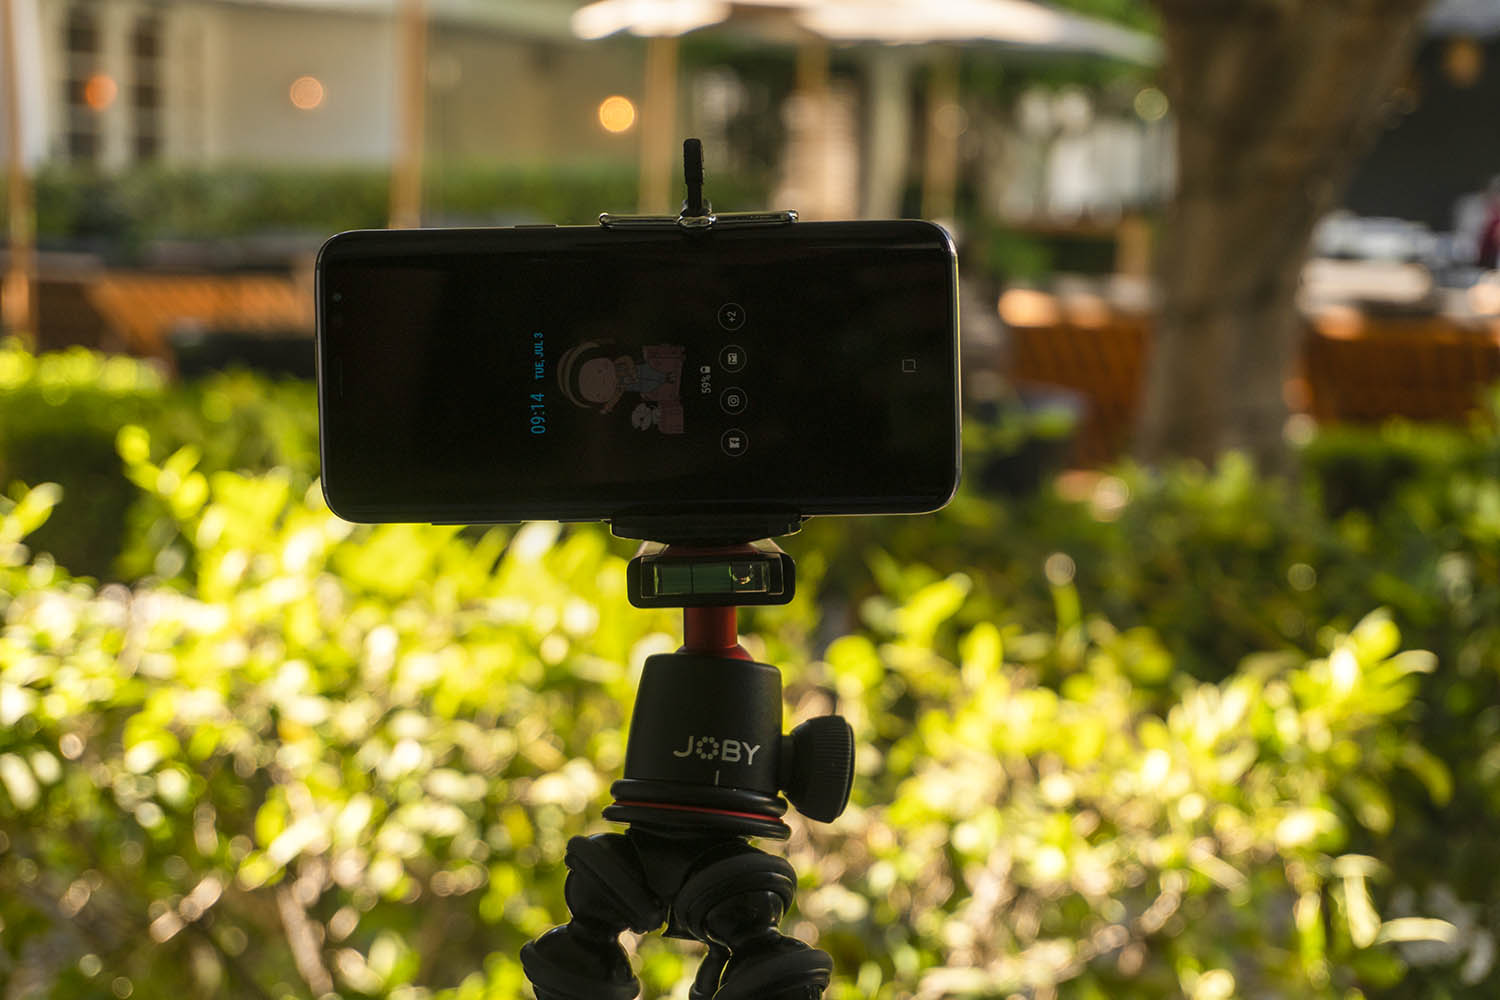 Equipment List for Making Better Videos With Your Smartphone - Smartphone mounted on a tripod